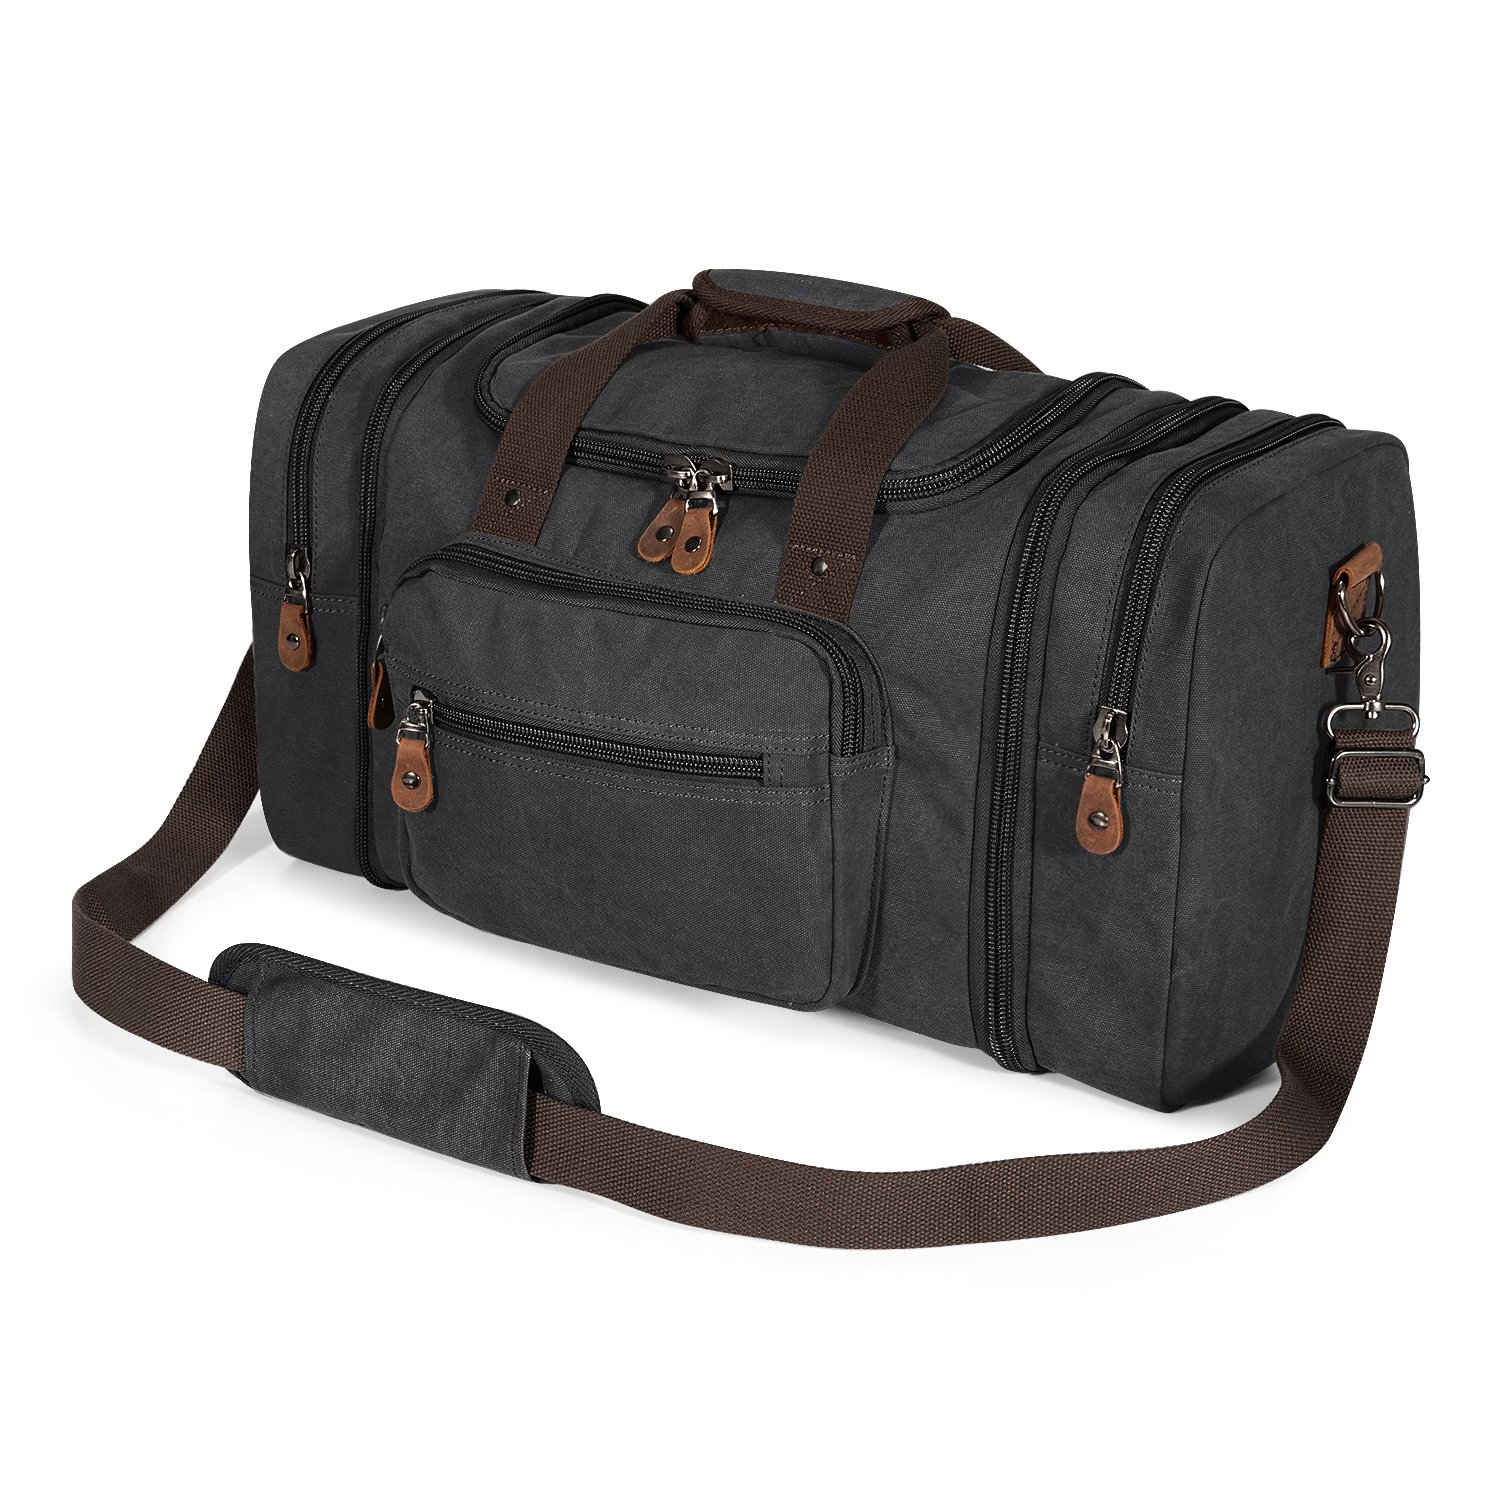 c470afed4237 Best Rated in Travel Duffel Bags   Helpful Customer Reviews - Amazon.com